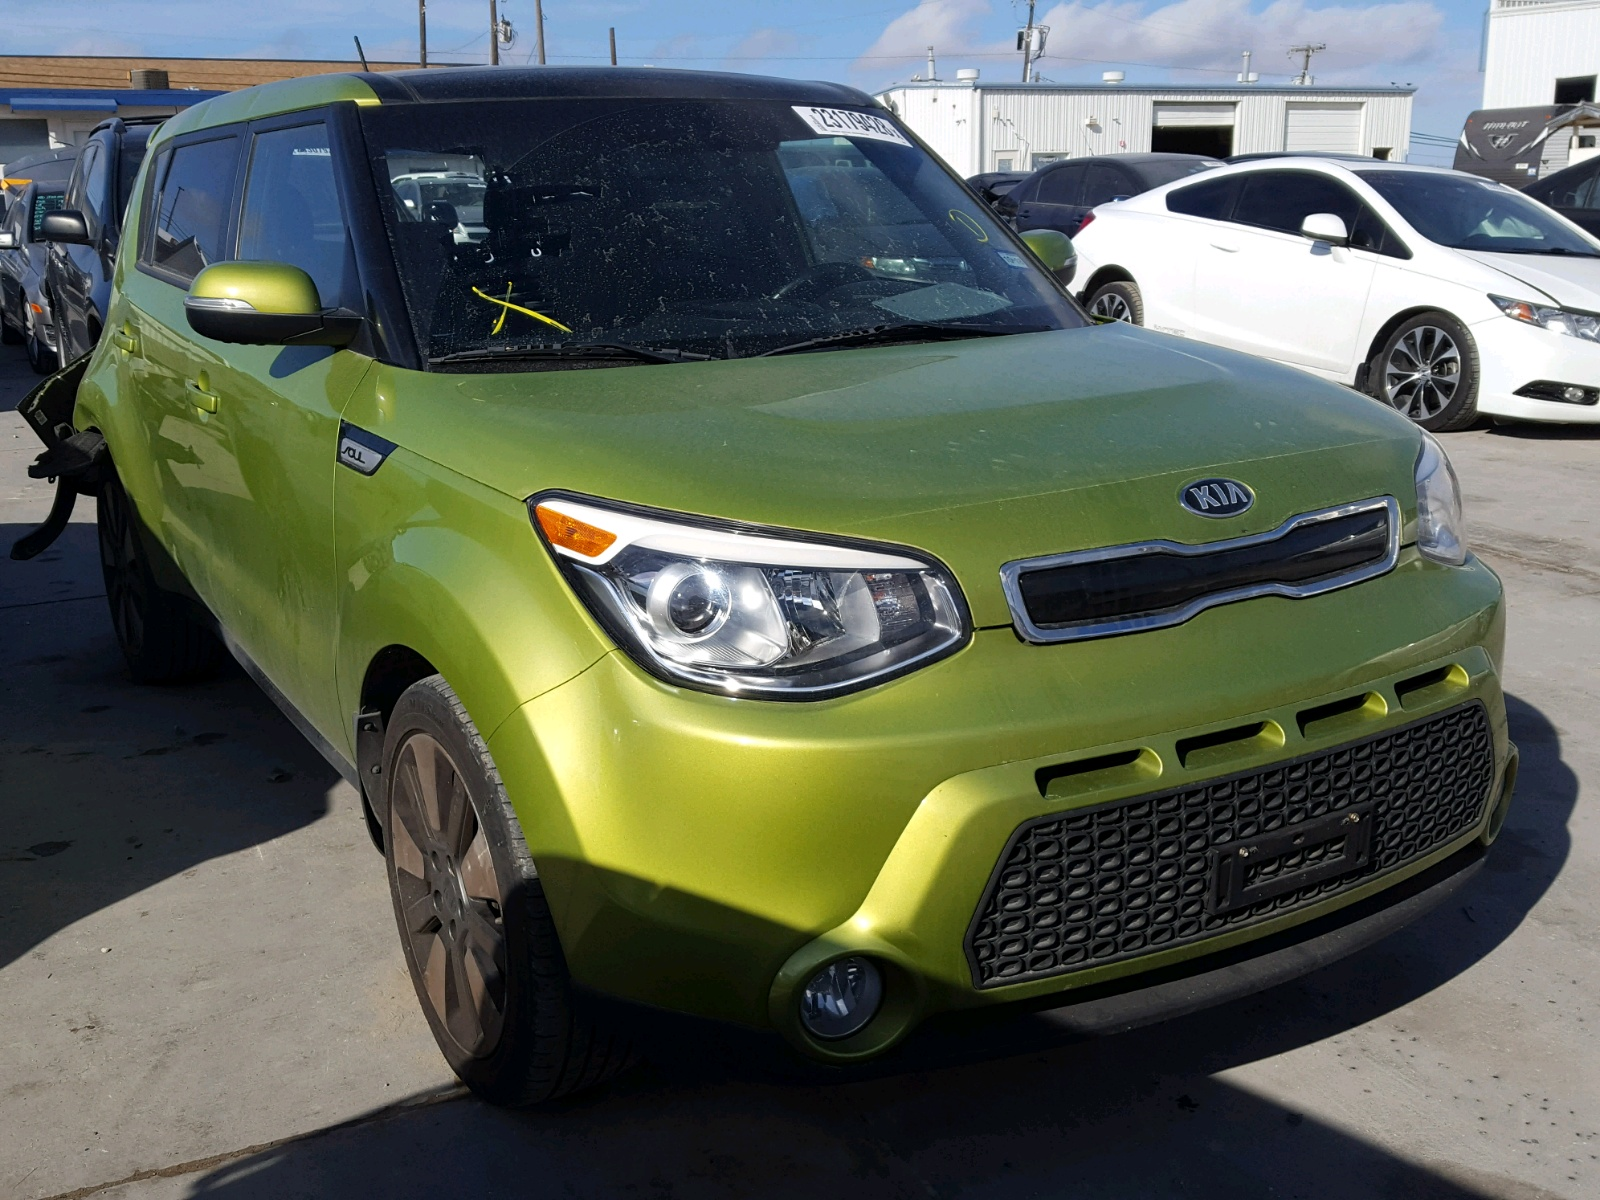 kia autos traditional vehicles rio tx vehicle picture dallas lot